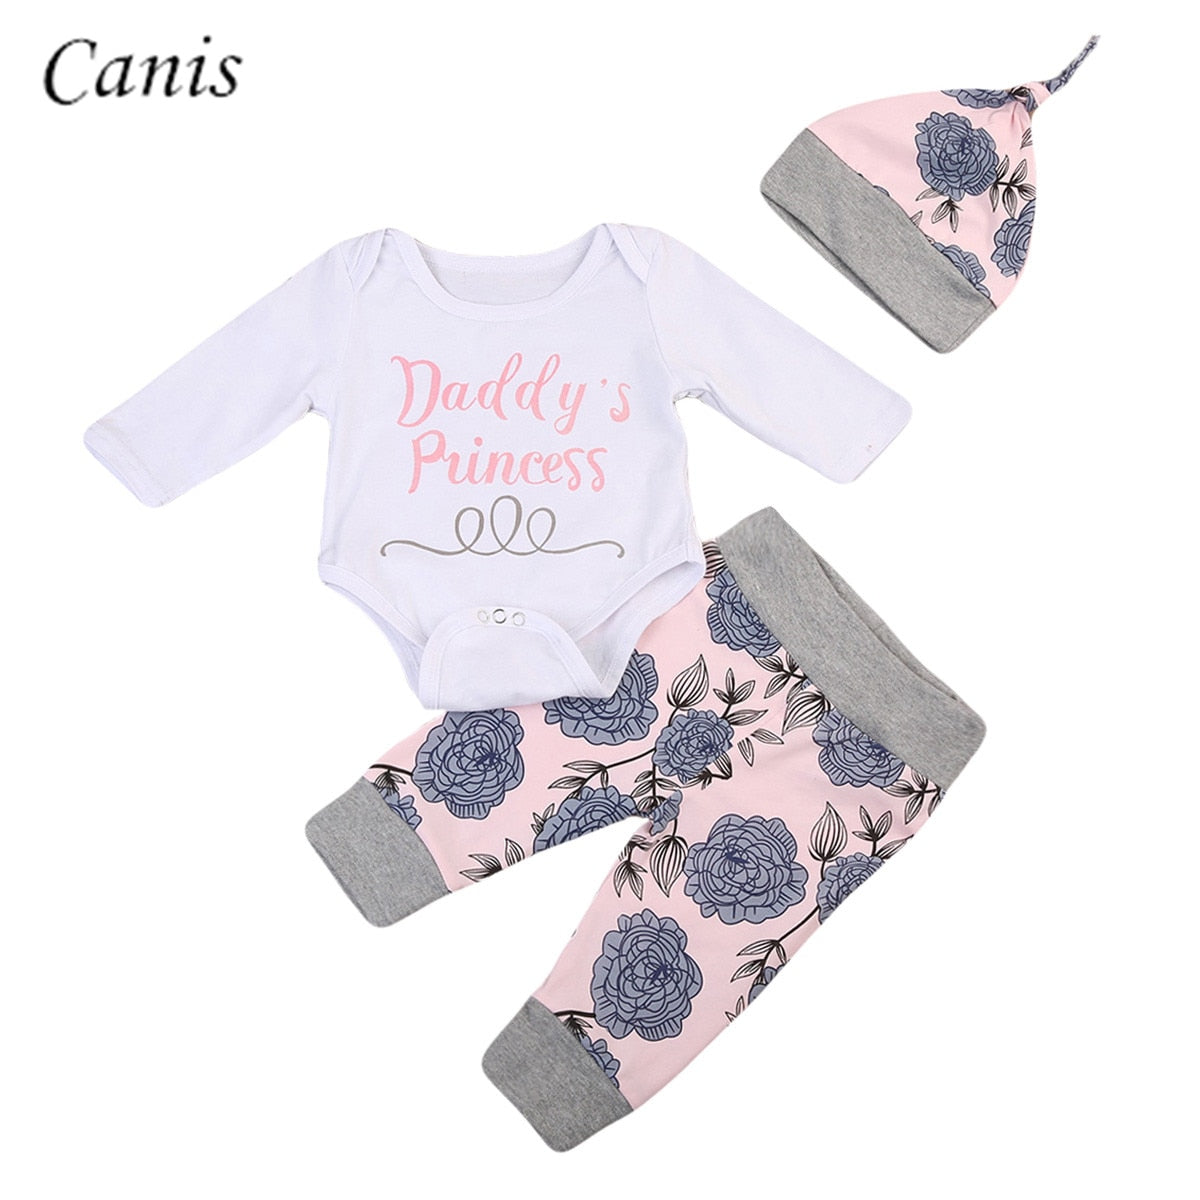 3PCS Newborn Infant Baby Boy Girl Outfits Clothes Set White Tops Romper Long Sleeve + Floral Pants Leggings+ Hat - Buy Babby